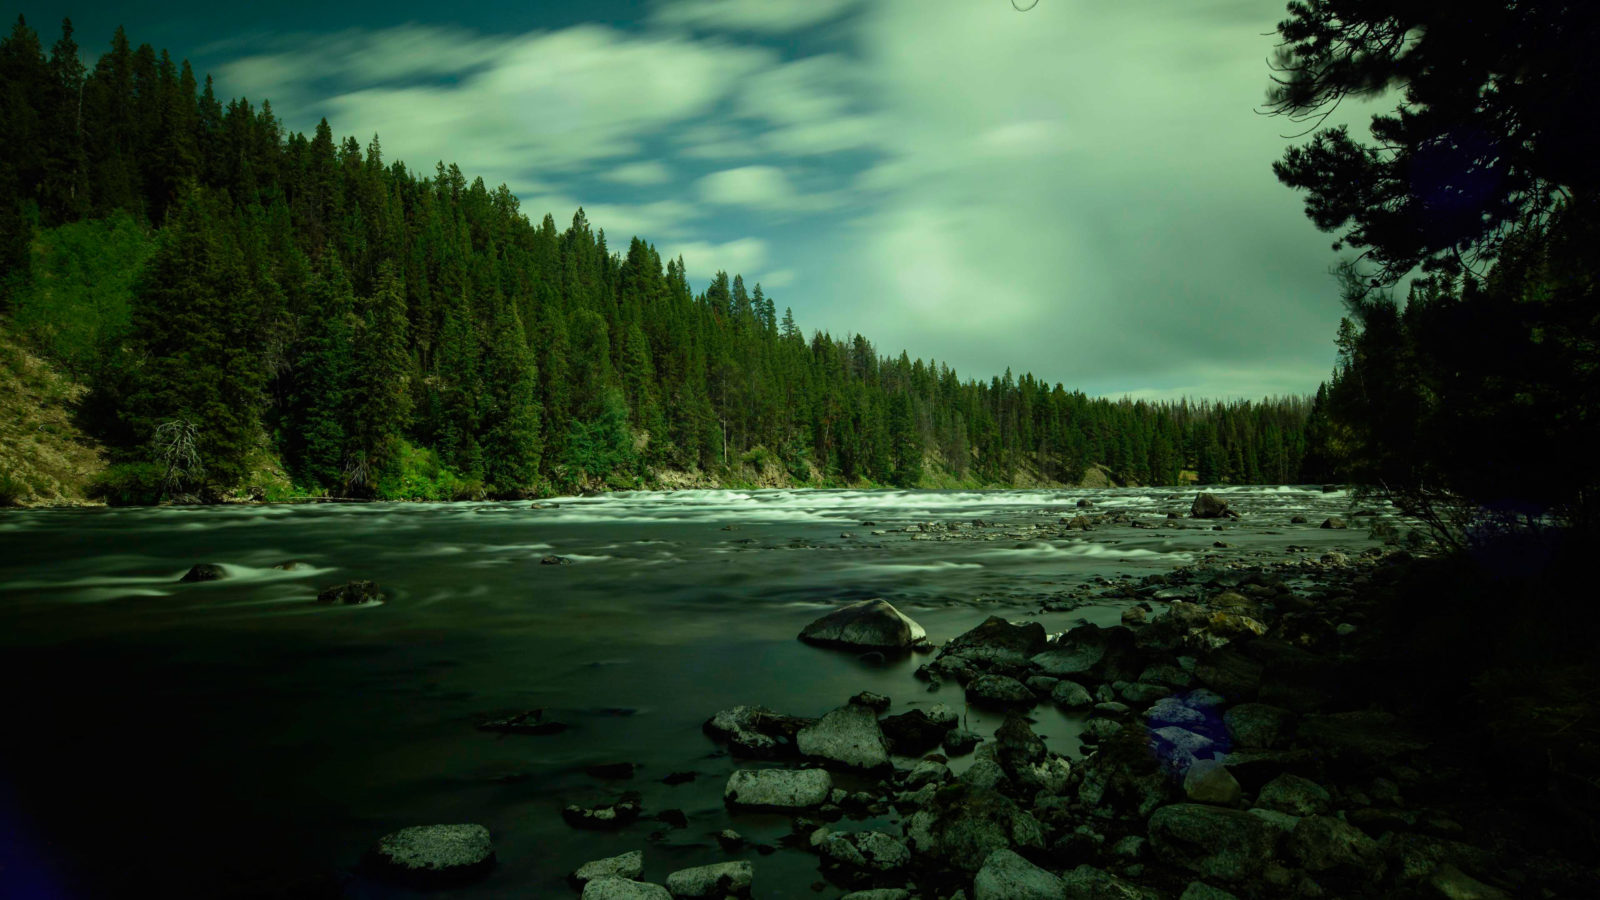 171 nature wallpaper examples for your desktop background - Hp wallpaper nature ...